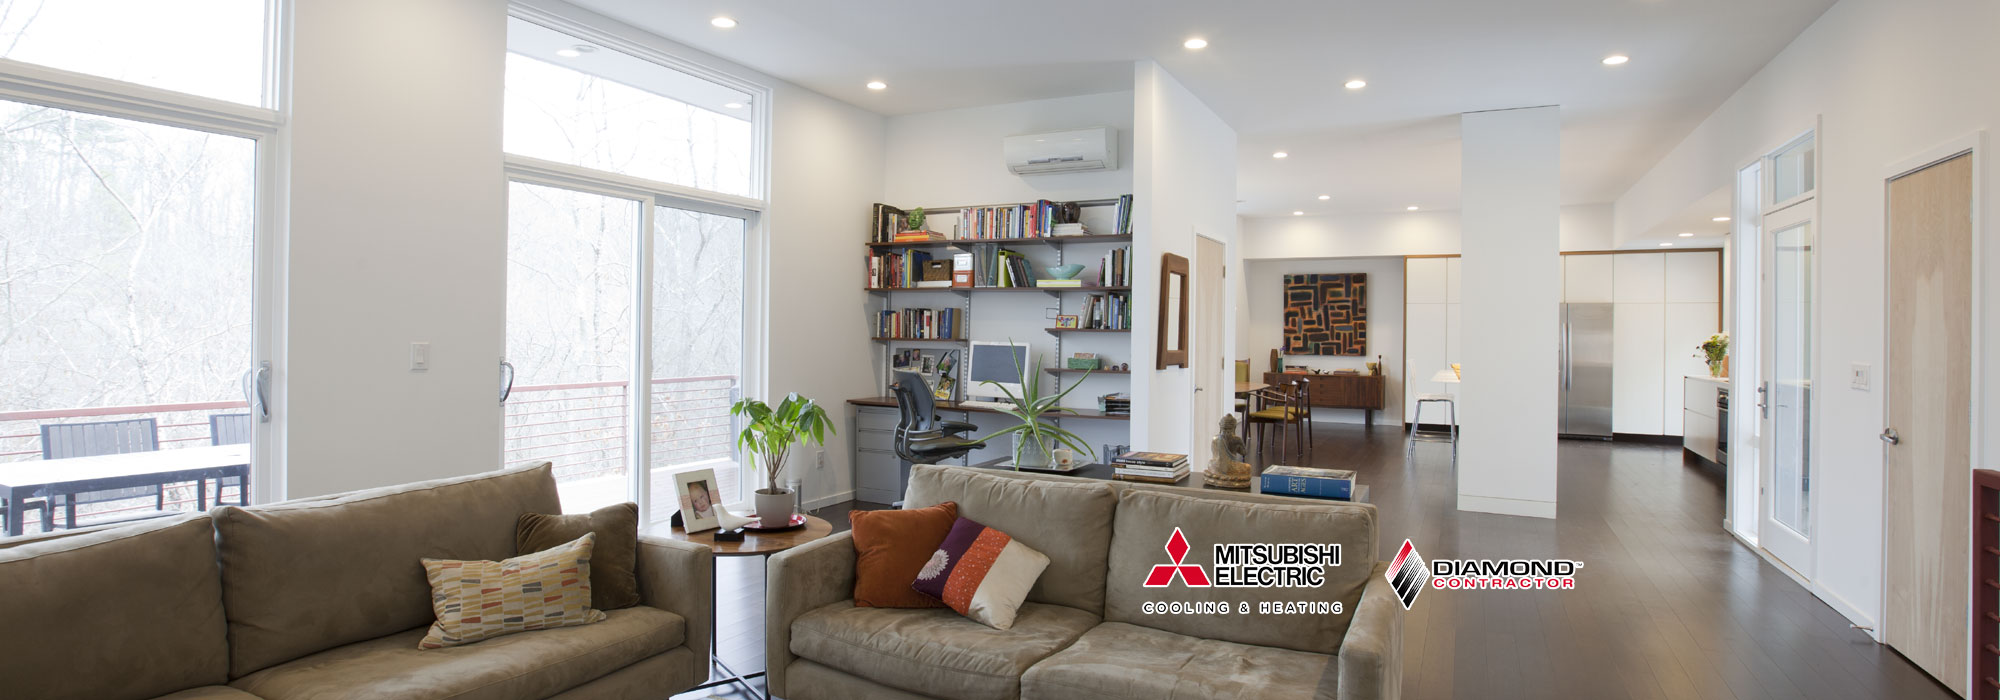 heating contact mini heat us pump ductless and products d article mz mitsubishi en btu air seer split normal cooling